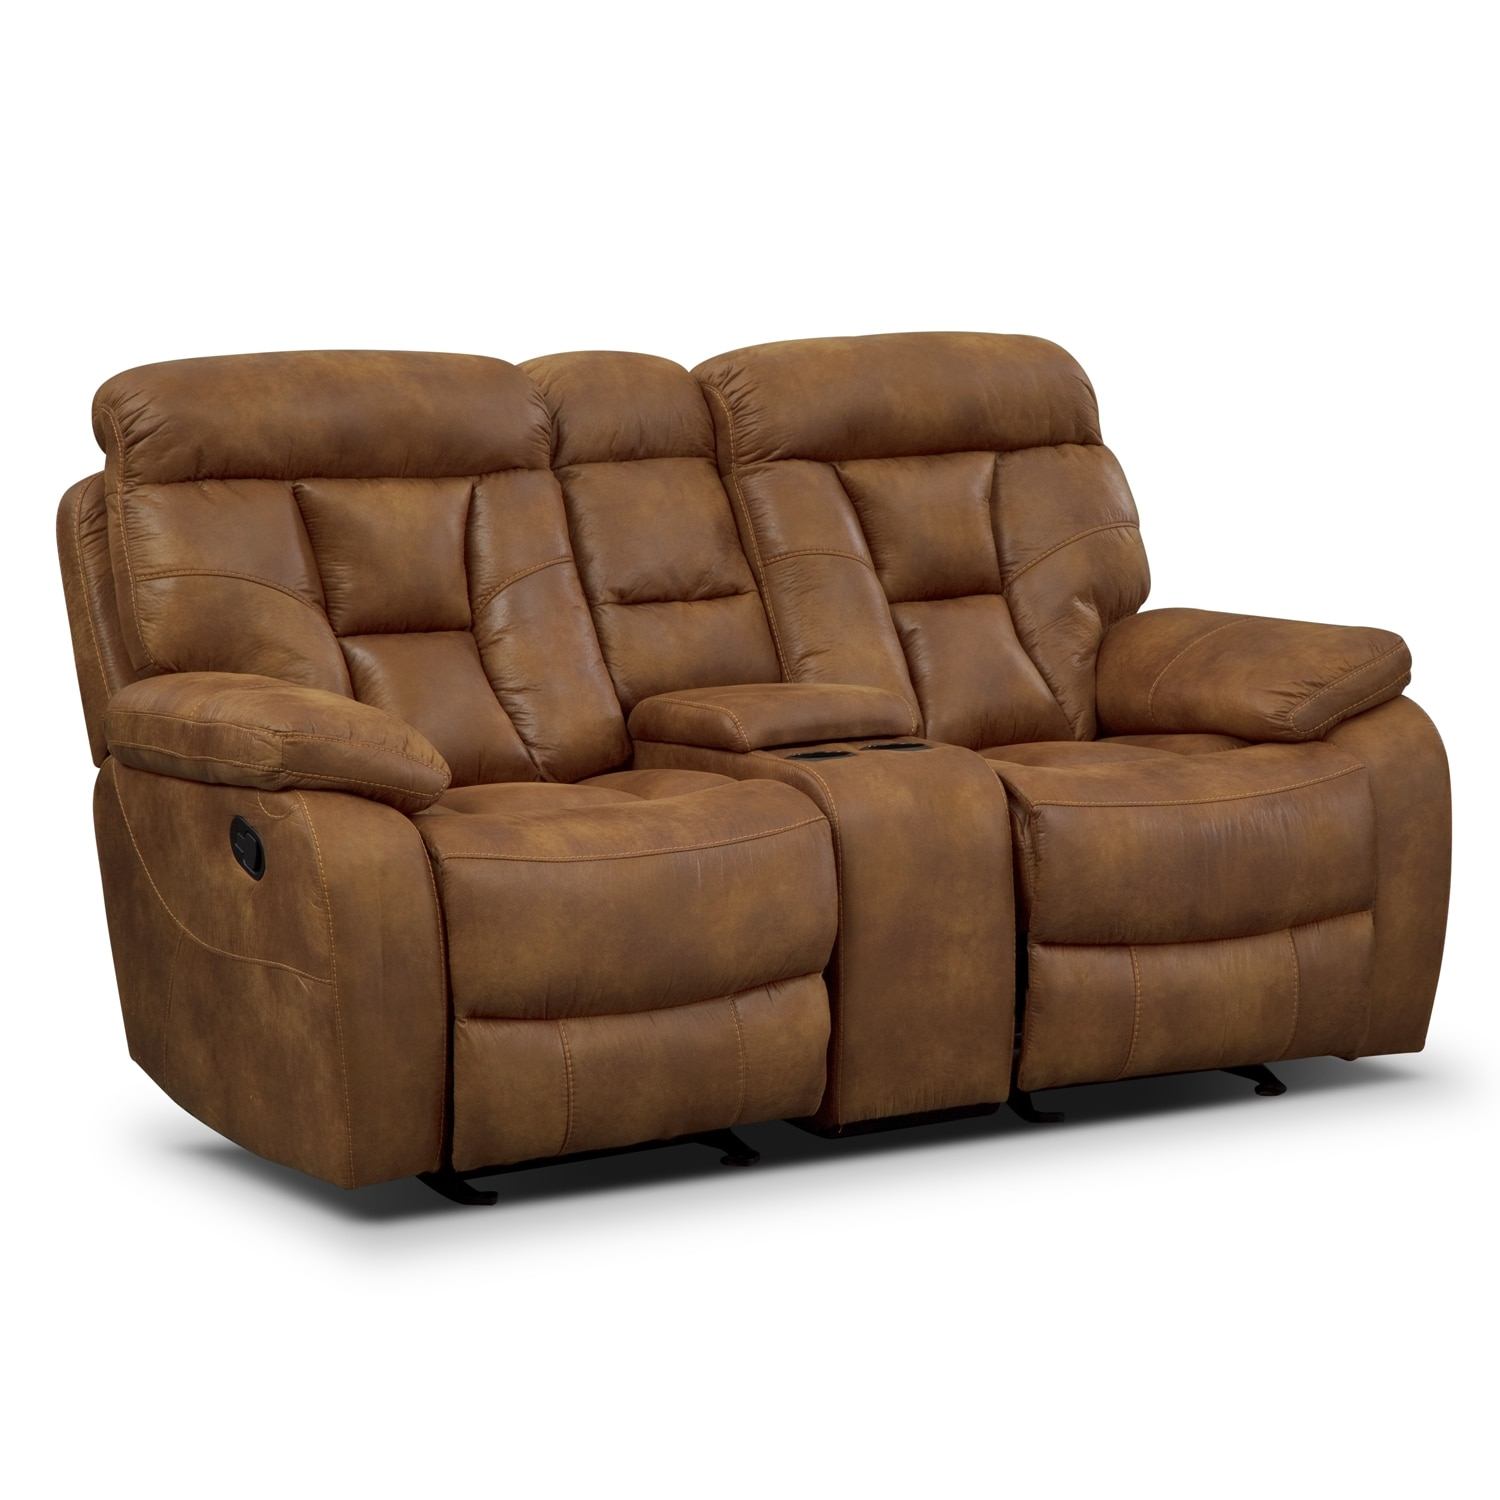 Dakota Ii Glider Reclining Loveseat With Console Value City Furniture